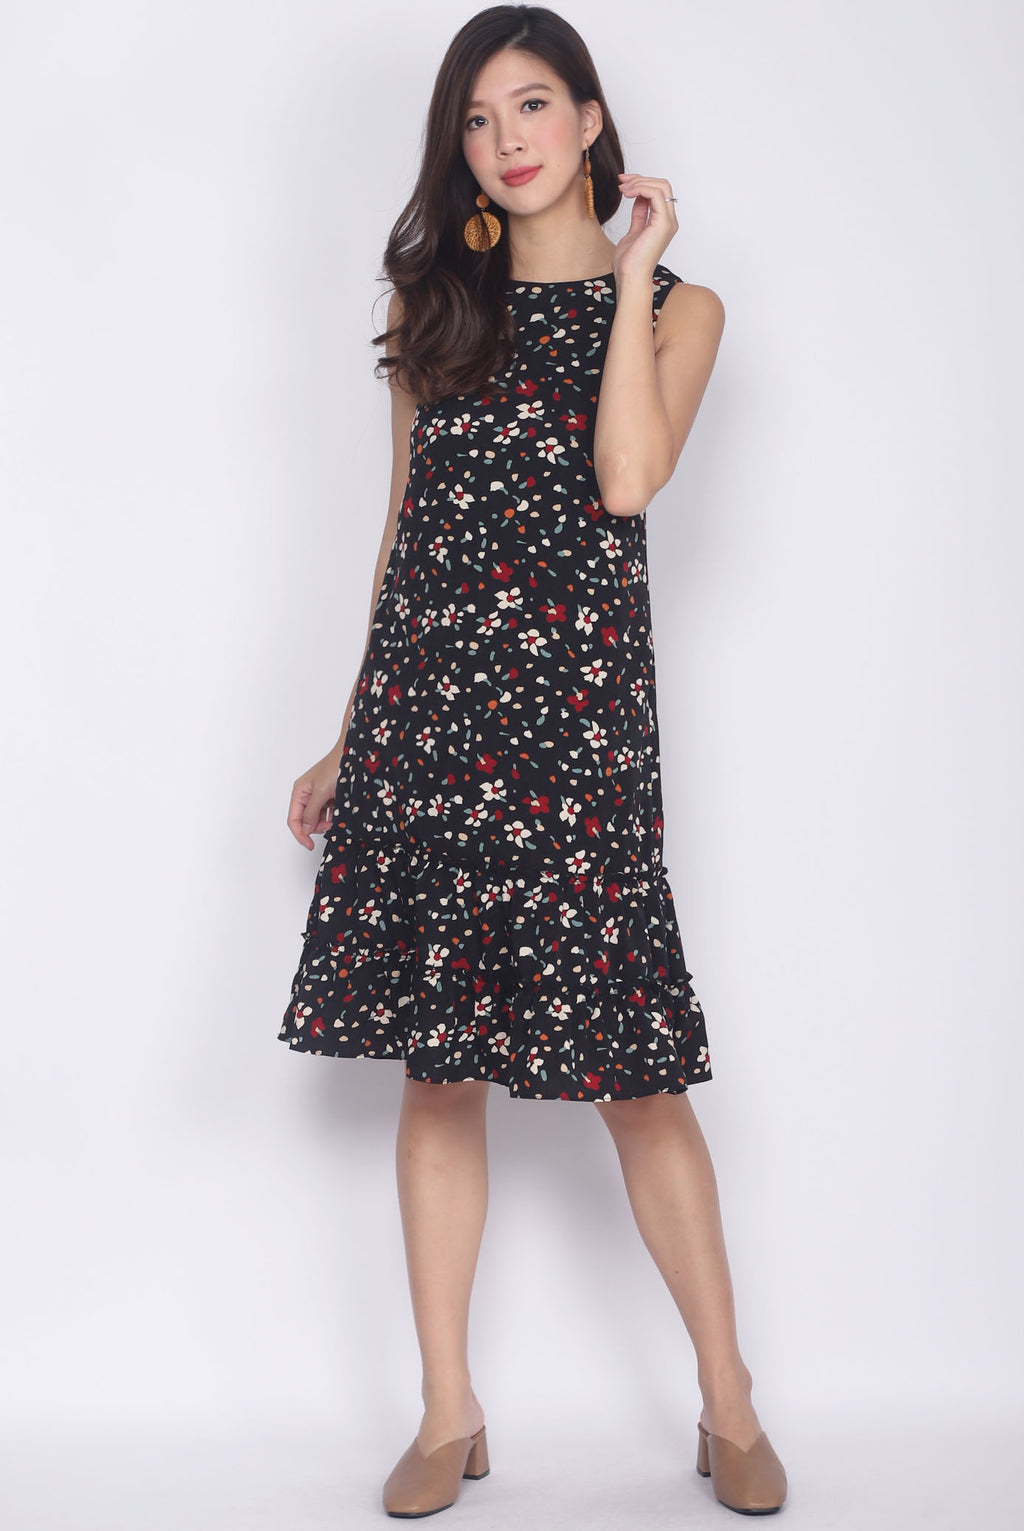 TDC Florrie Colourful Paint Tiered Dress In Black